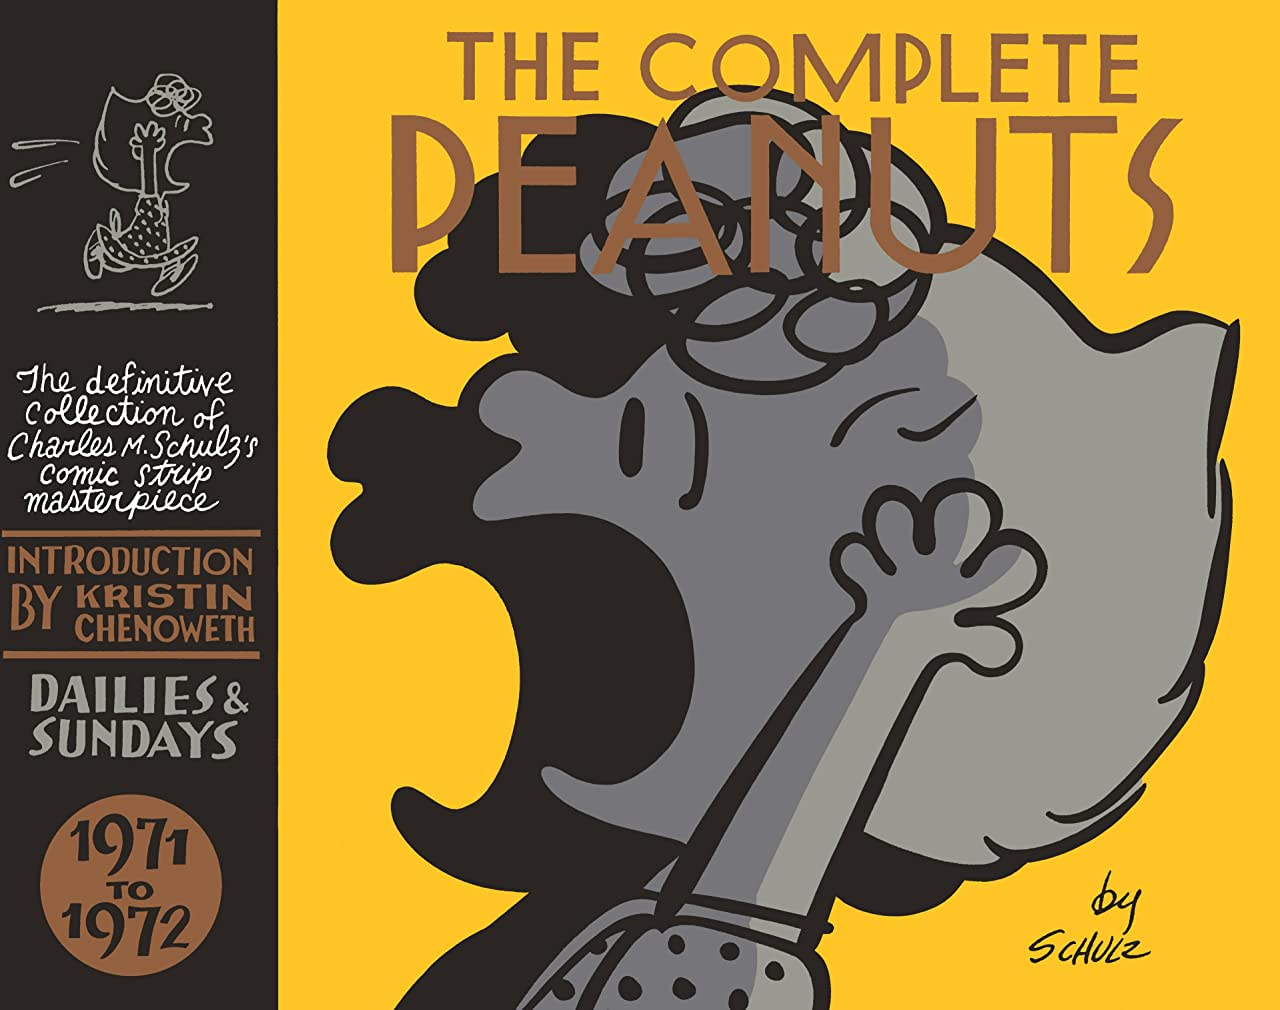 The Complete Peanuts Vol. 11: 1971-1972